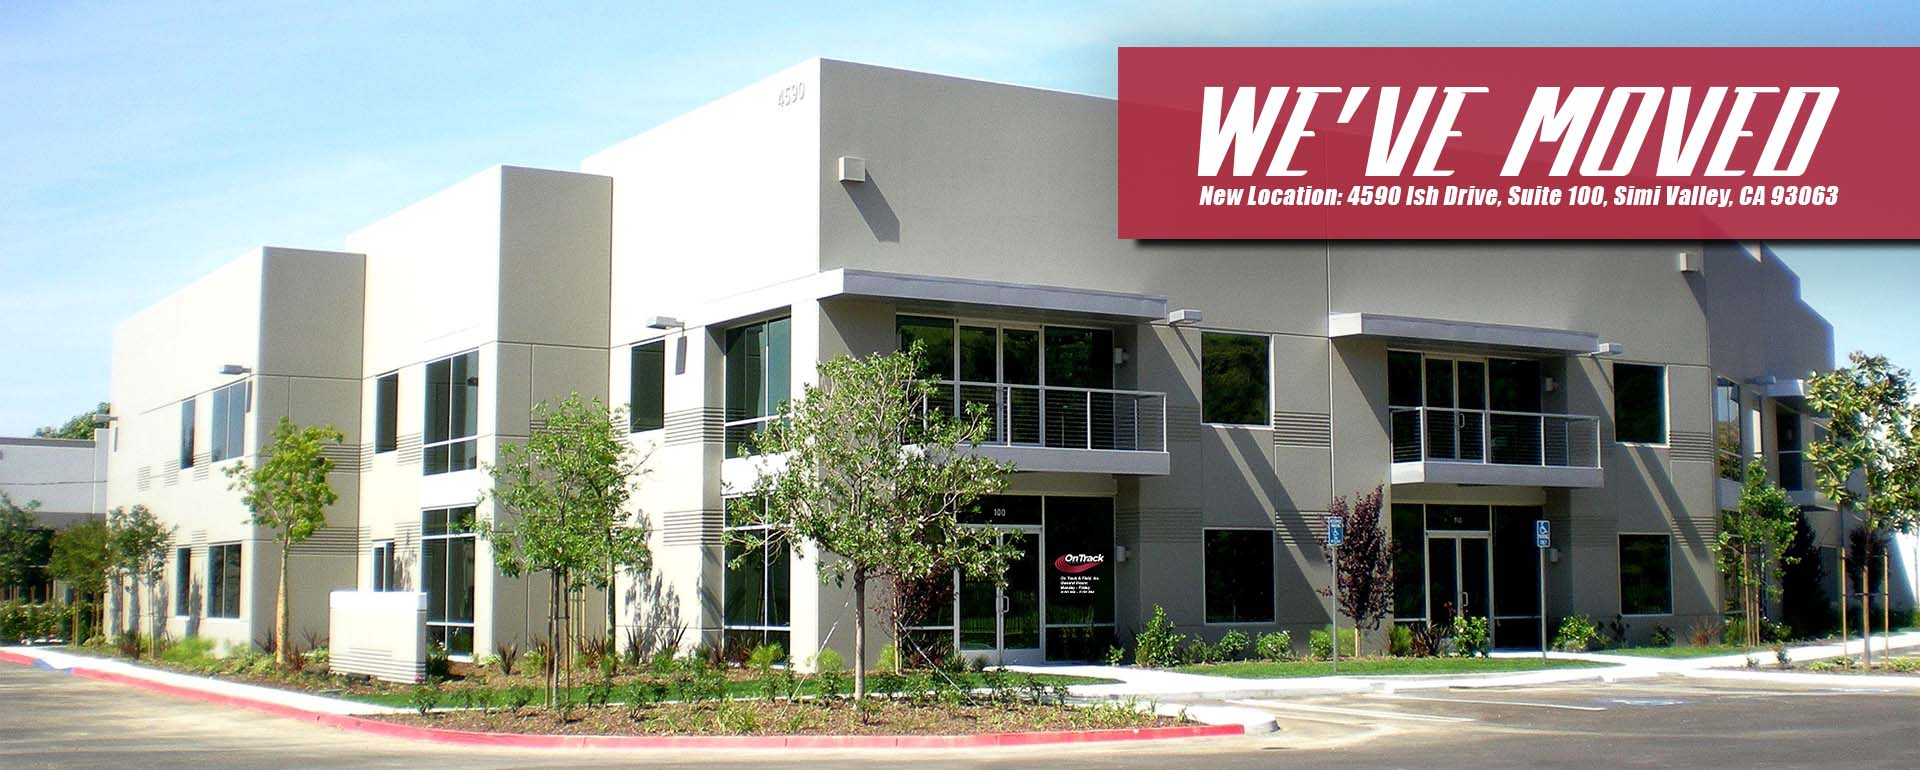 On Track and Field Inc's New Showroom and Warehouse Location: 4590 Ish Drive, Simi Valley, Suite 100, California 93063